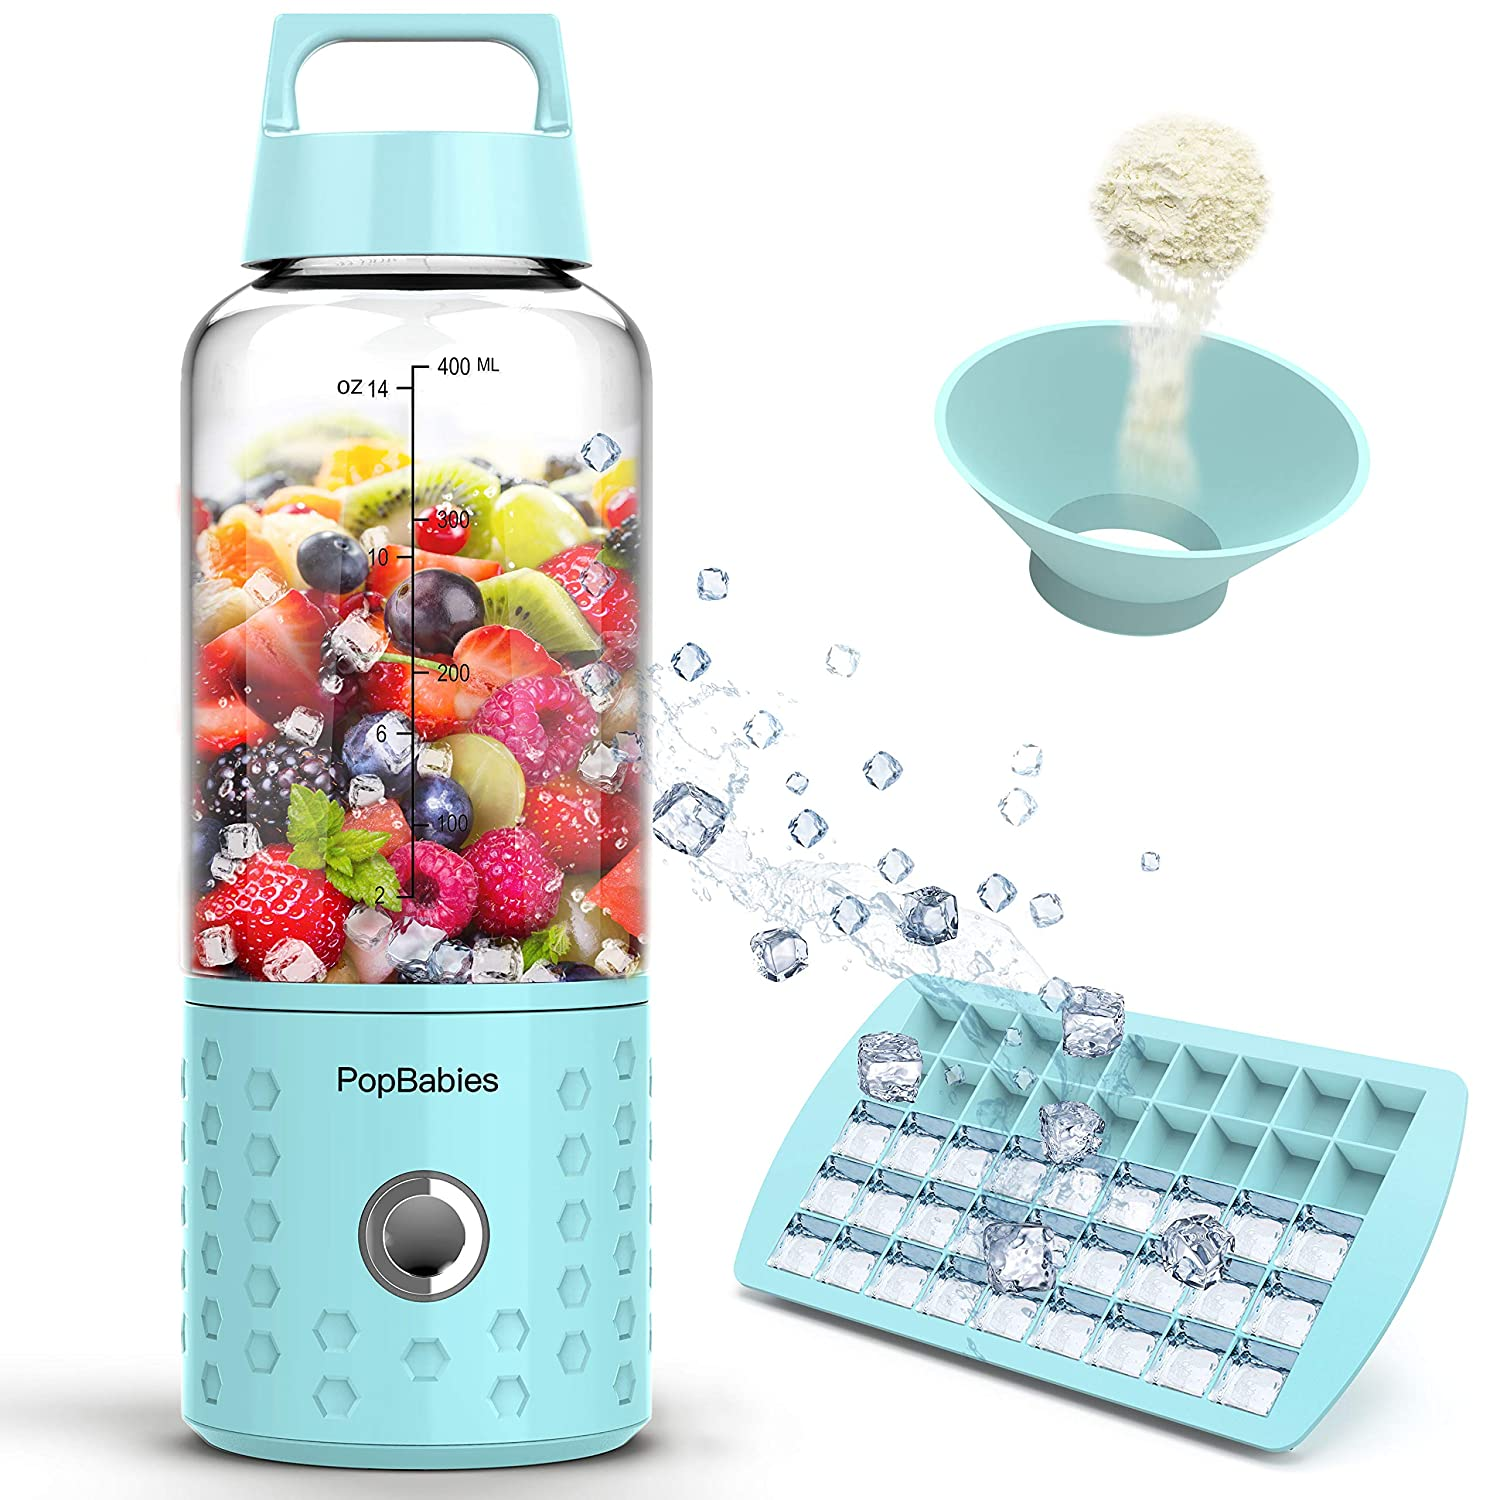 Personal Blender, PopBabies Portable Blender for Travel, Rechargeable USB Blender for Shakes and Smoothies Stronger and Faster with Ice Tray Funnel and Recipe Carolina Blue (FDA and BPA free)